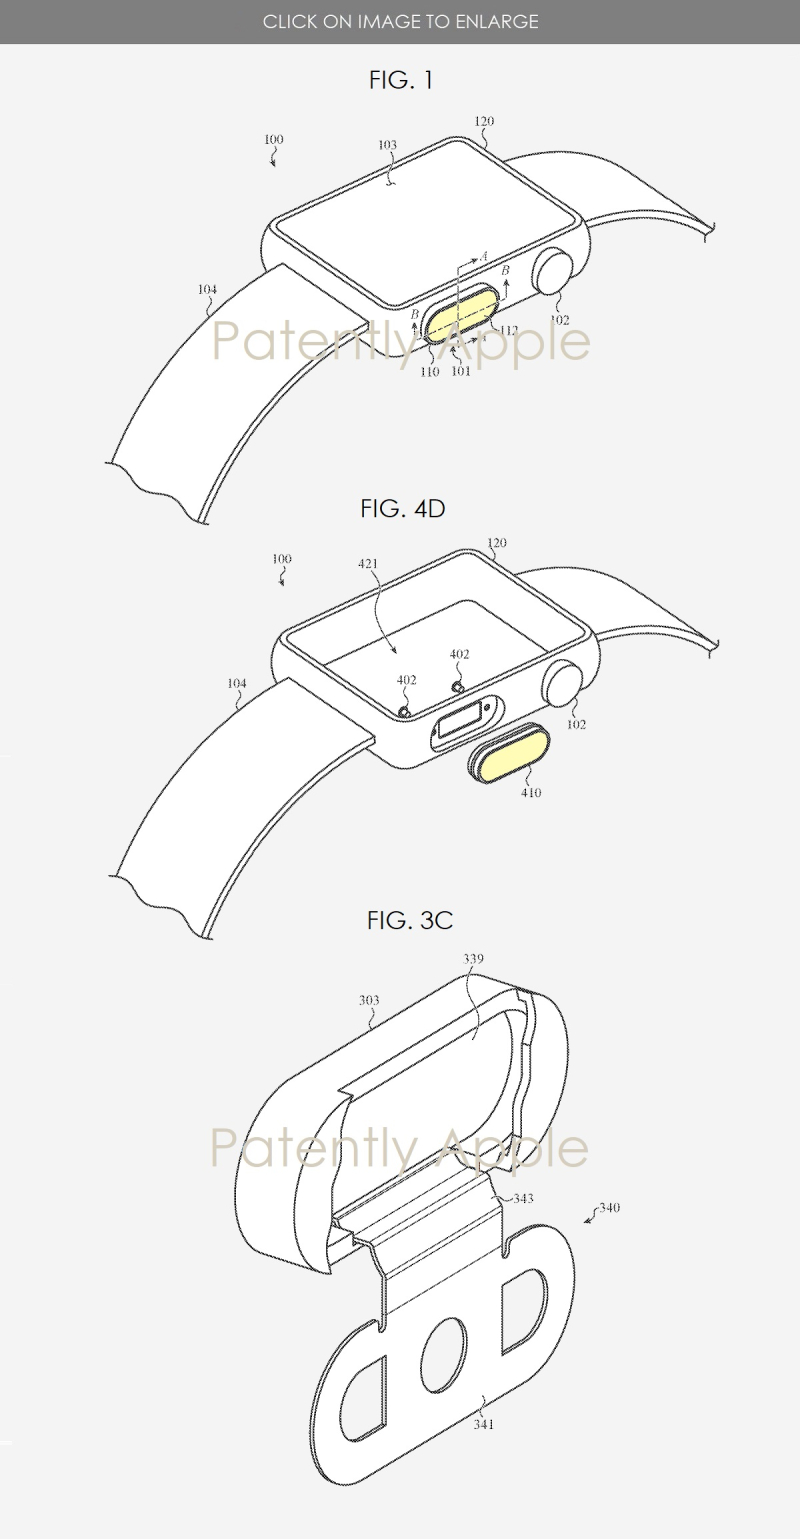 2 APPLE WATCH WITH TOUCH ID BUTTON FIGS